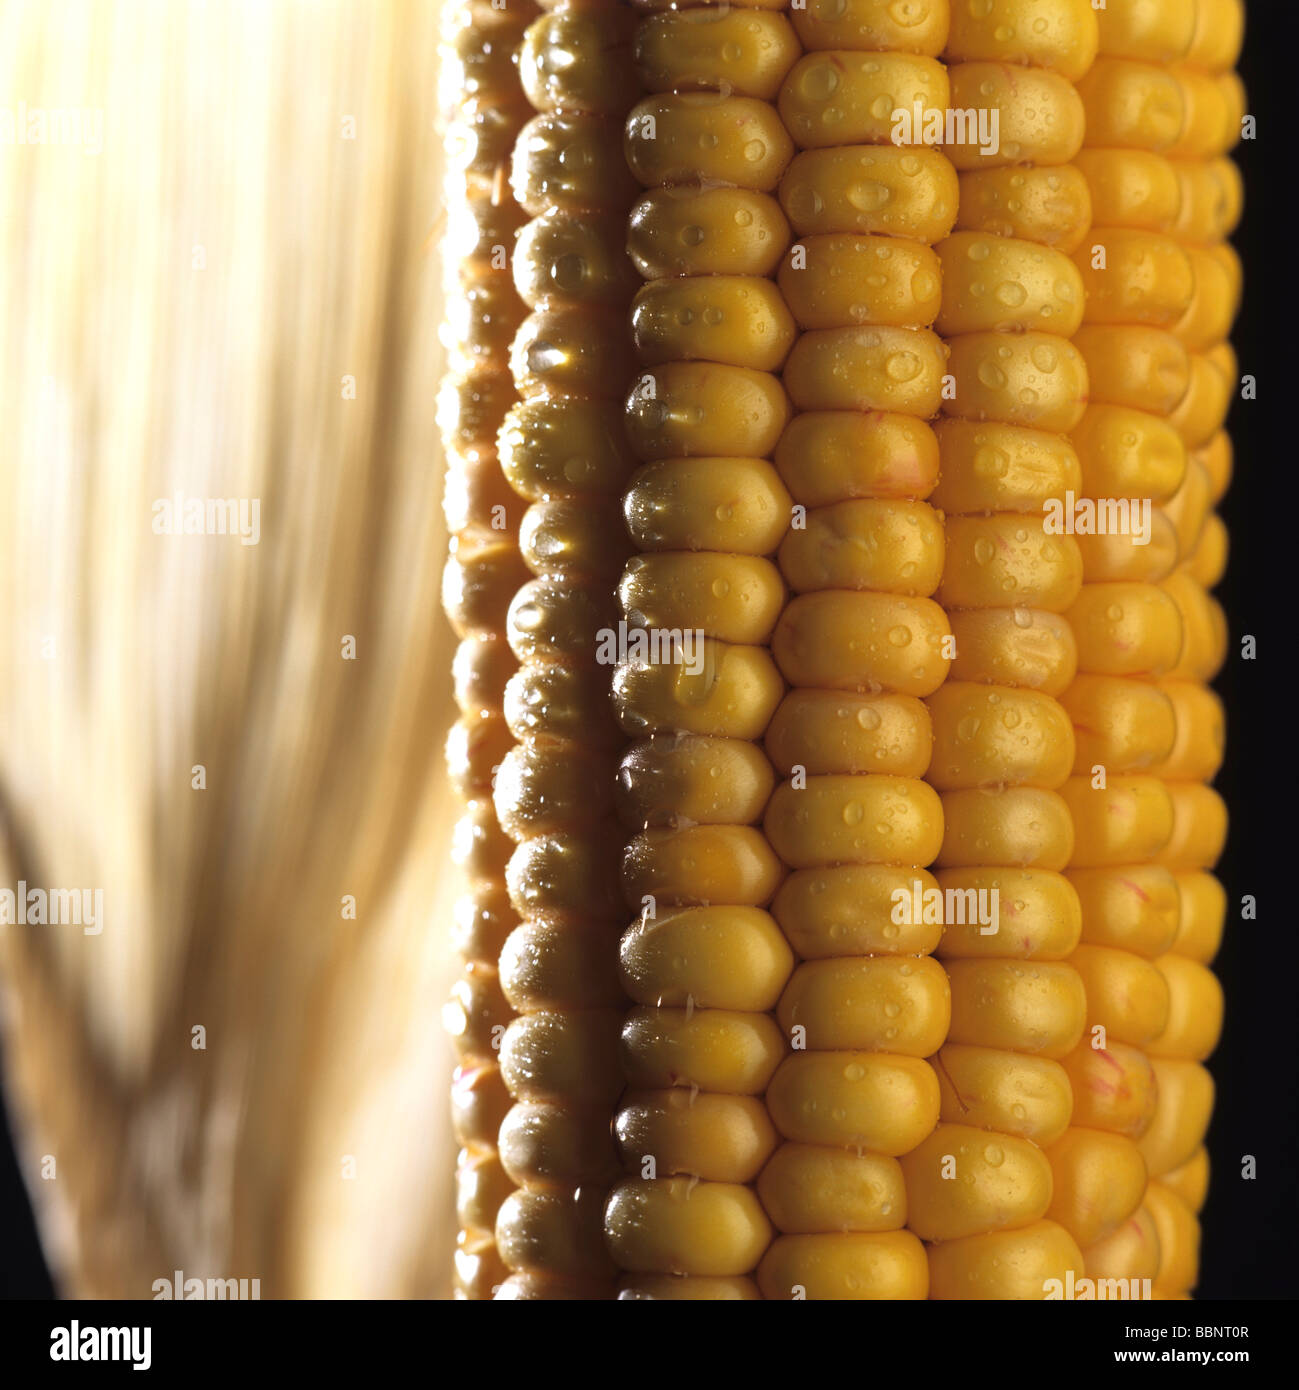 Ear of maize or Corn cob - Stock Image